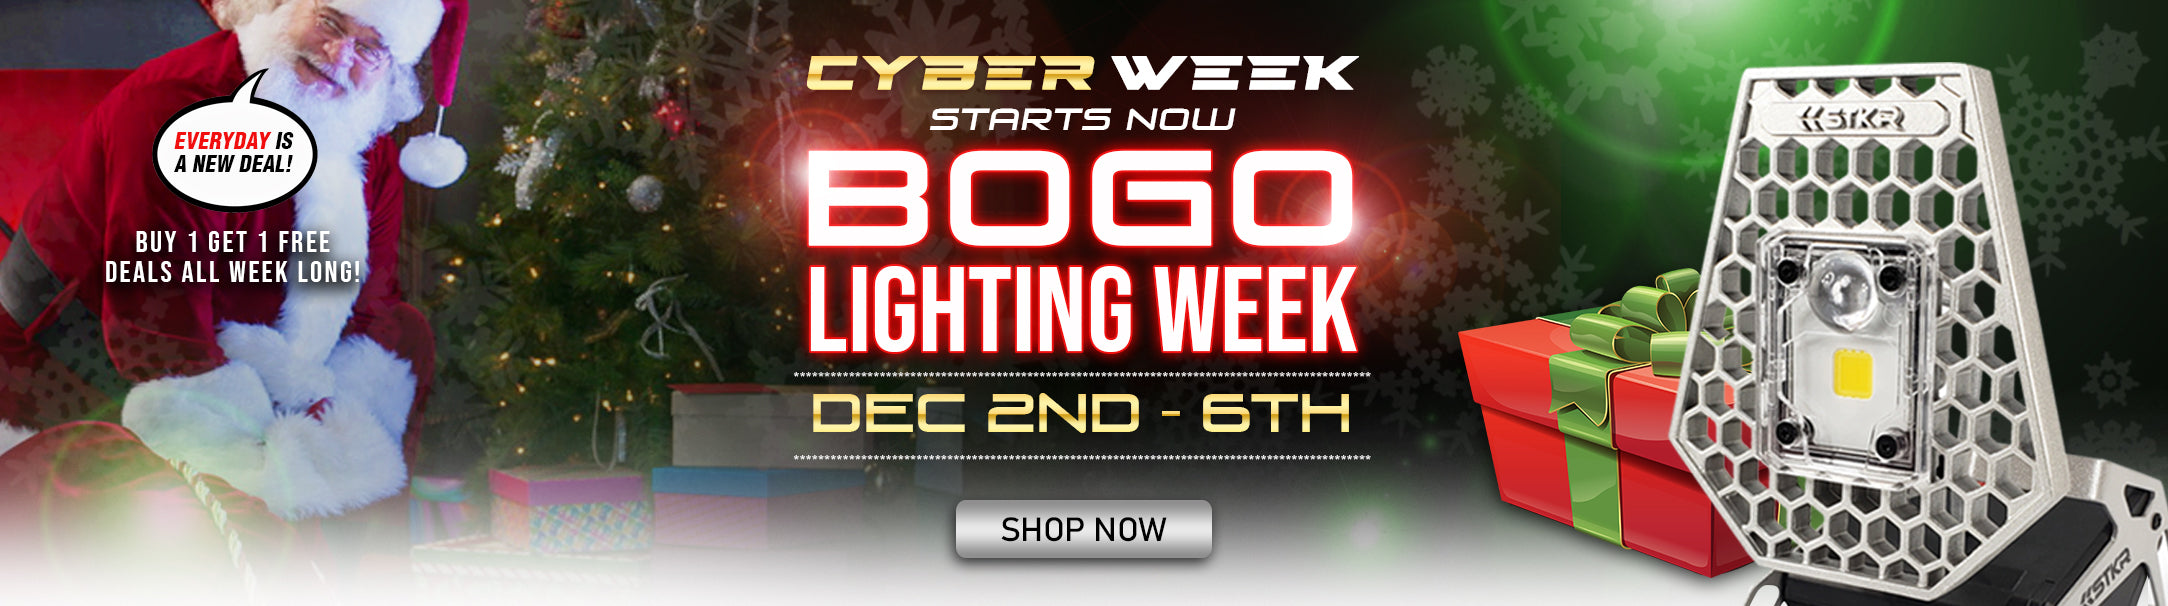 STKR Concepts Cyber Week Sale - BOGO Lighting and Flashlight Deals